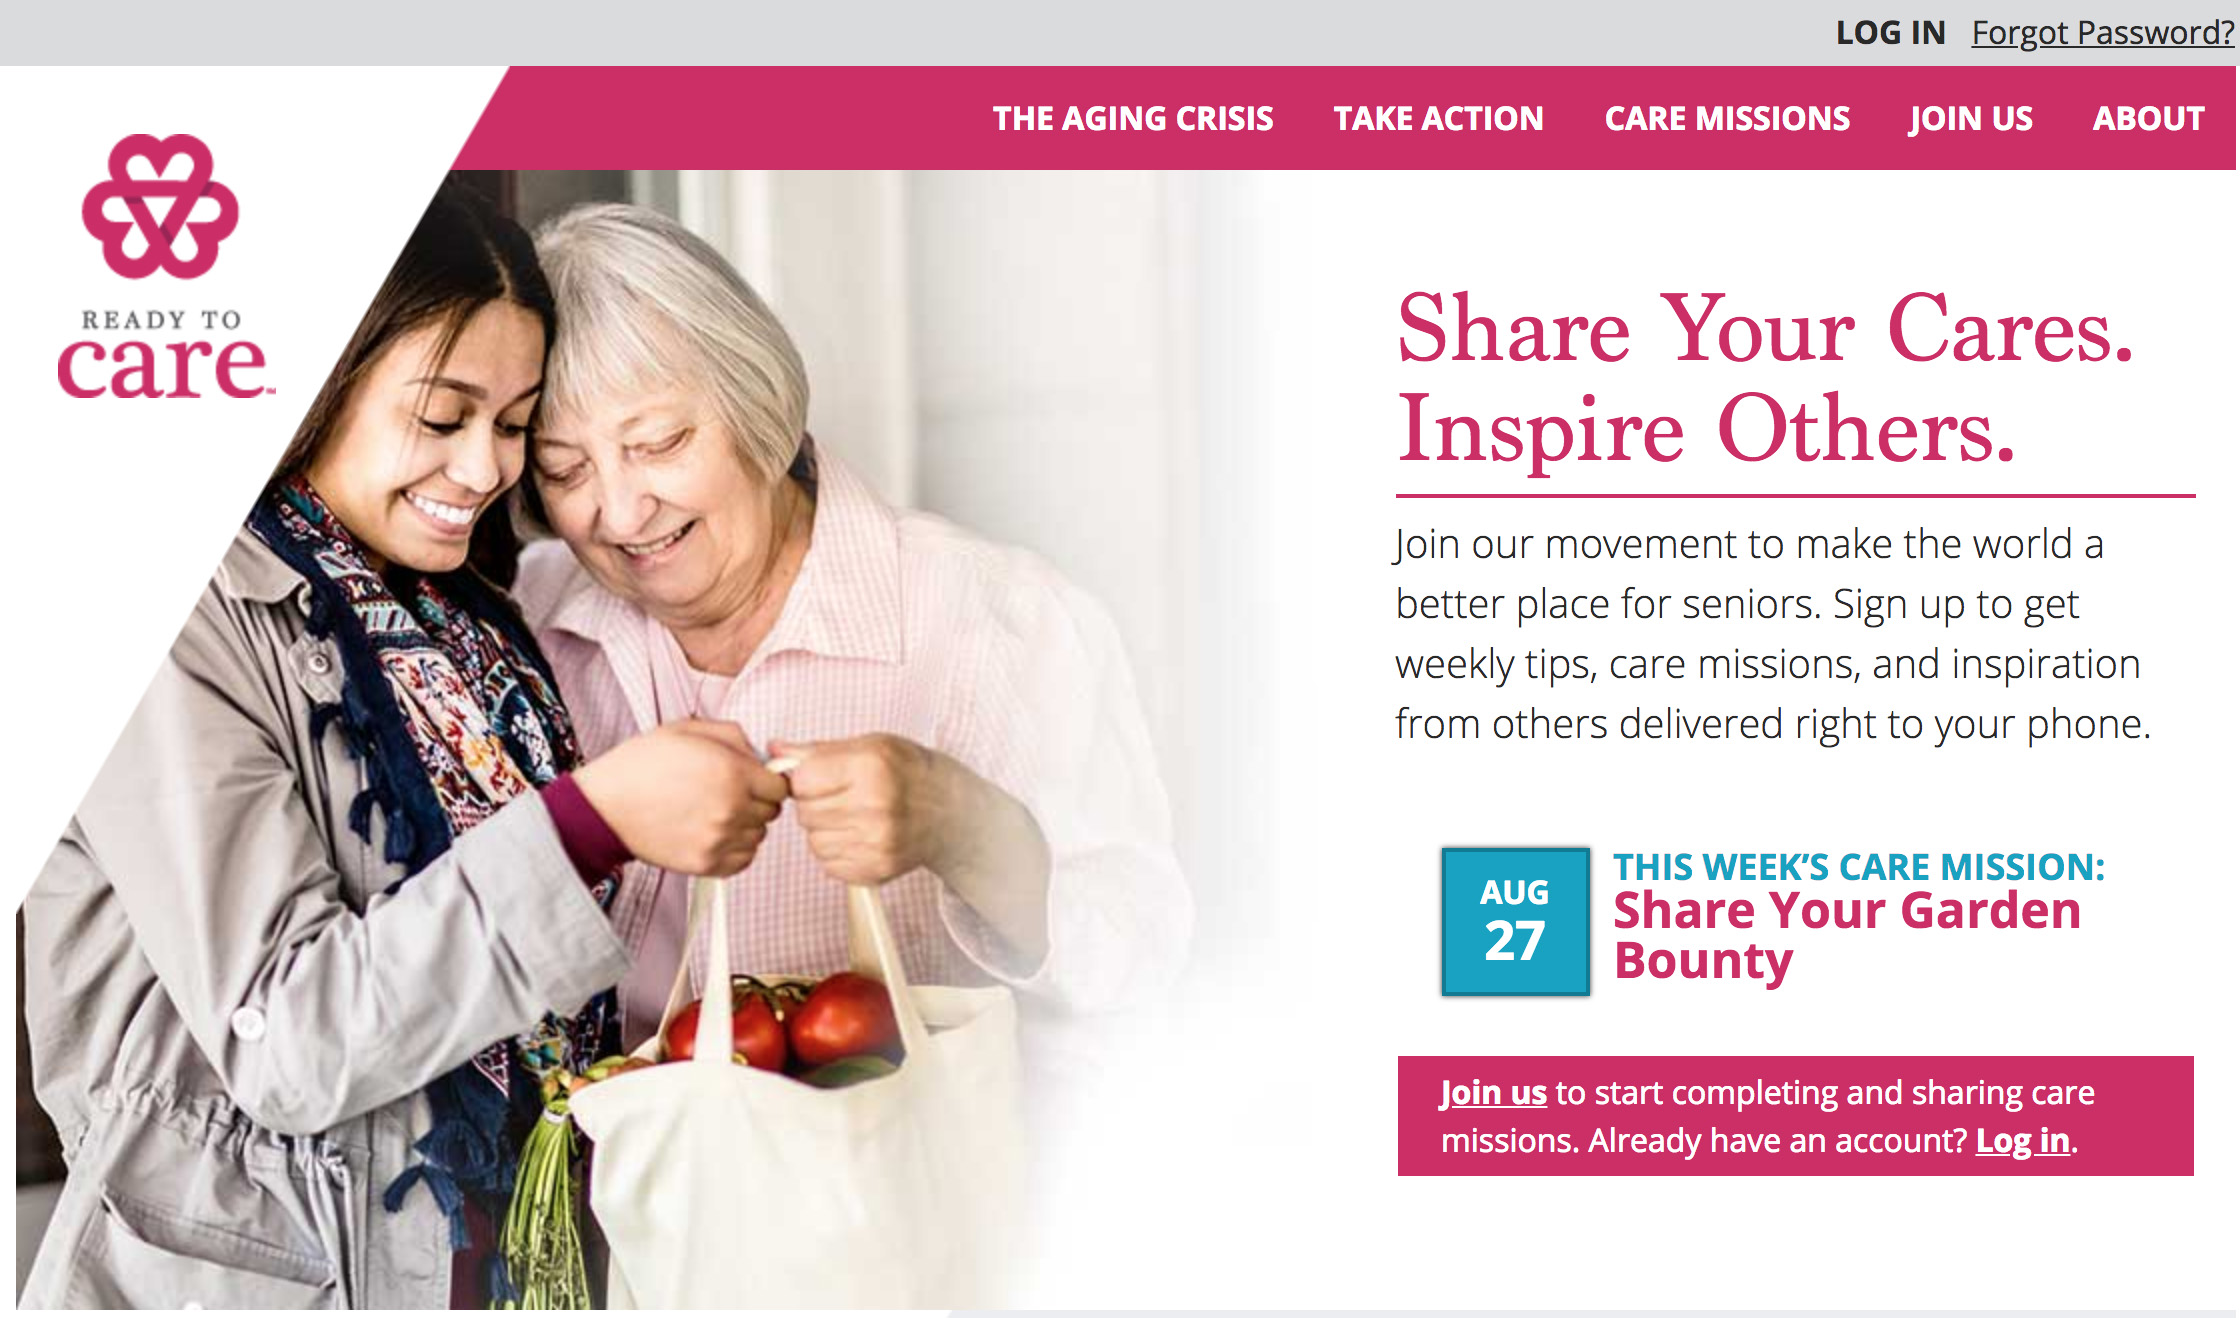 Weekly care missions offer simple ways to connect with and help aging neighbors and loved ones.